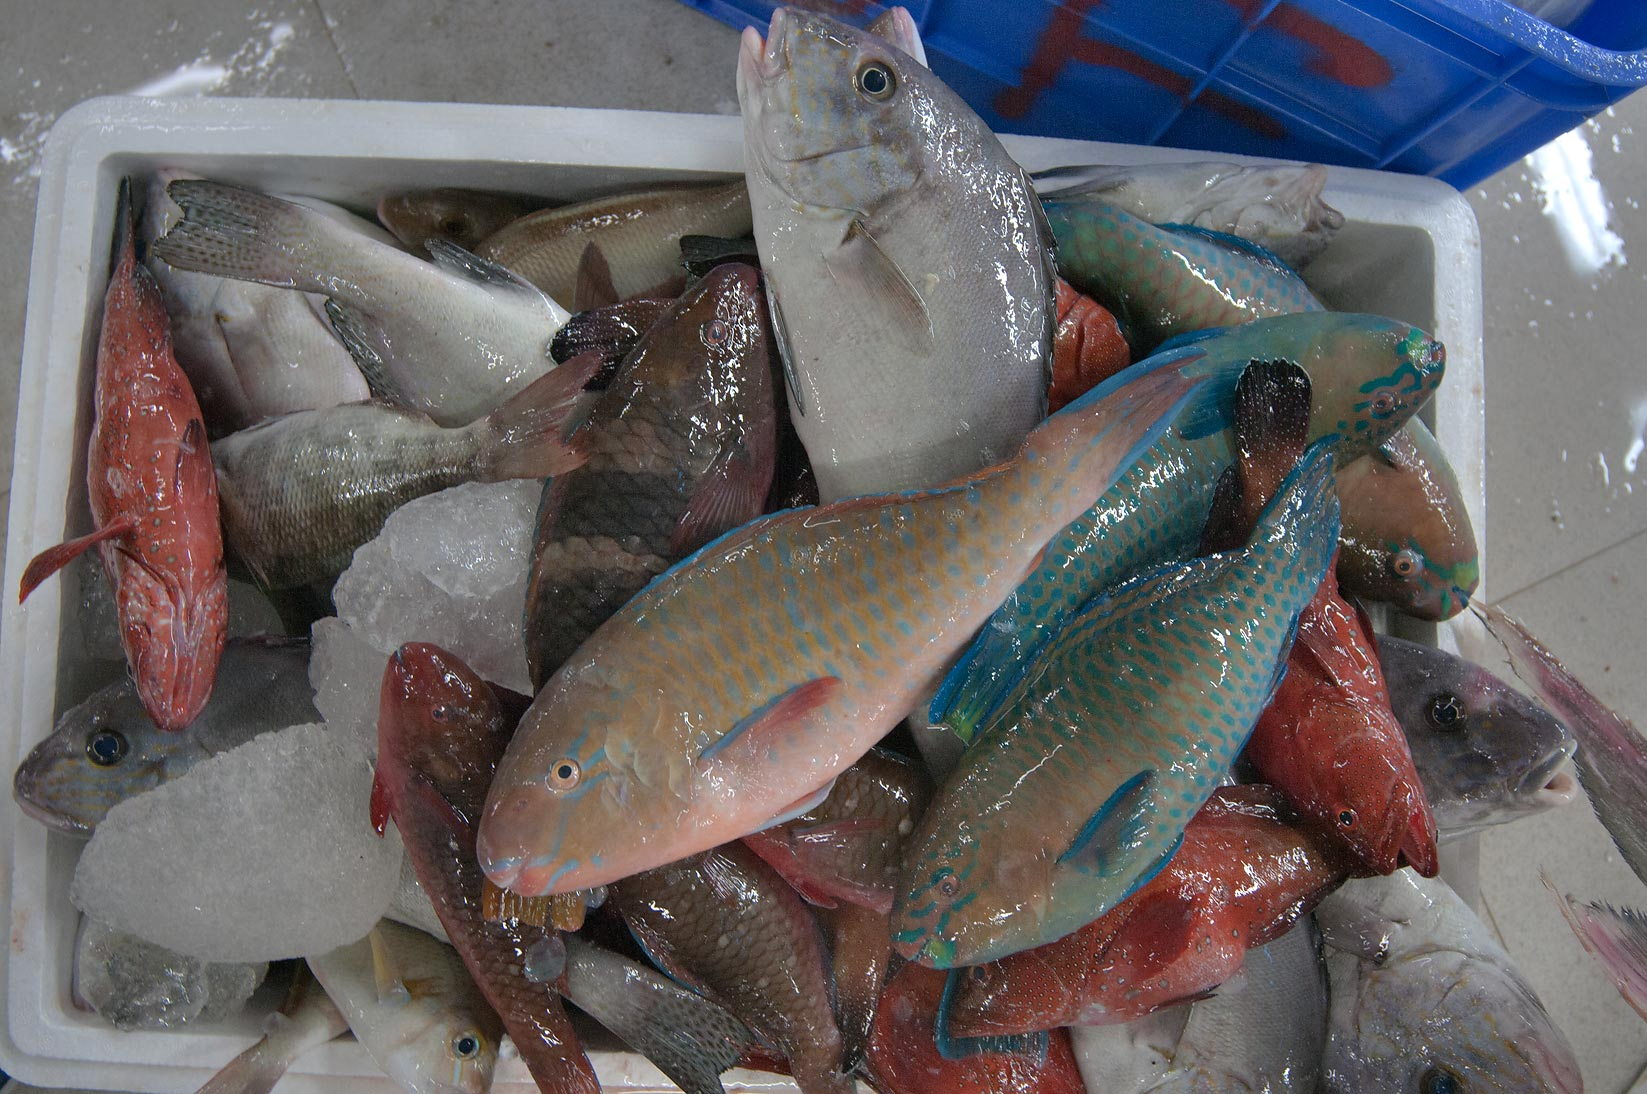 Box of parrotfish (Gain, Chlorurus sordidus) in Central Fish Market. Doha, Qatar